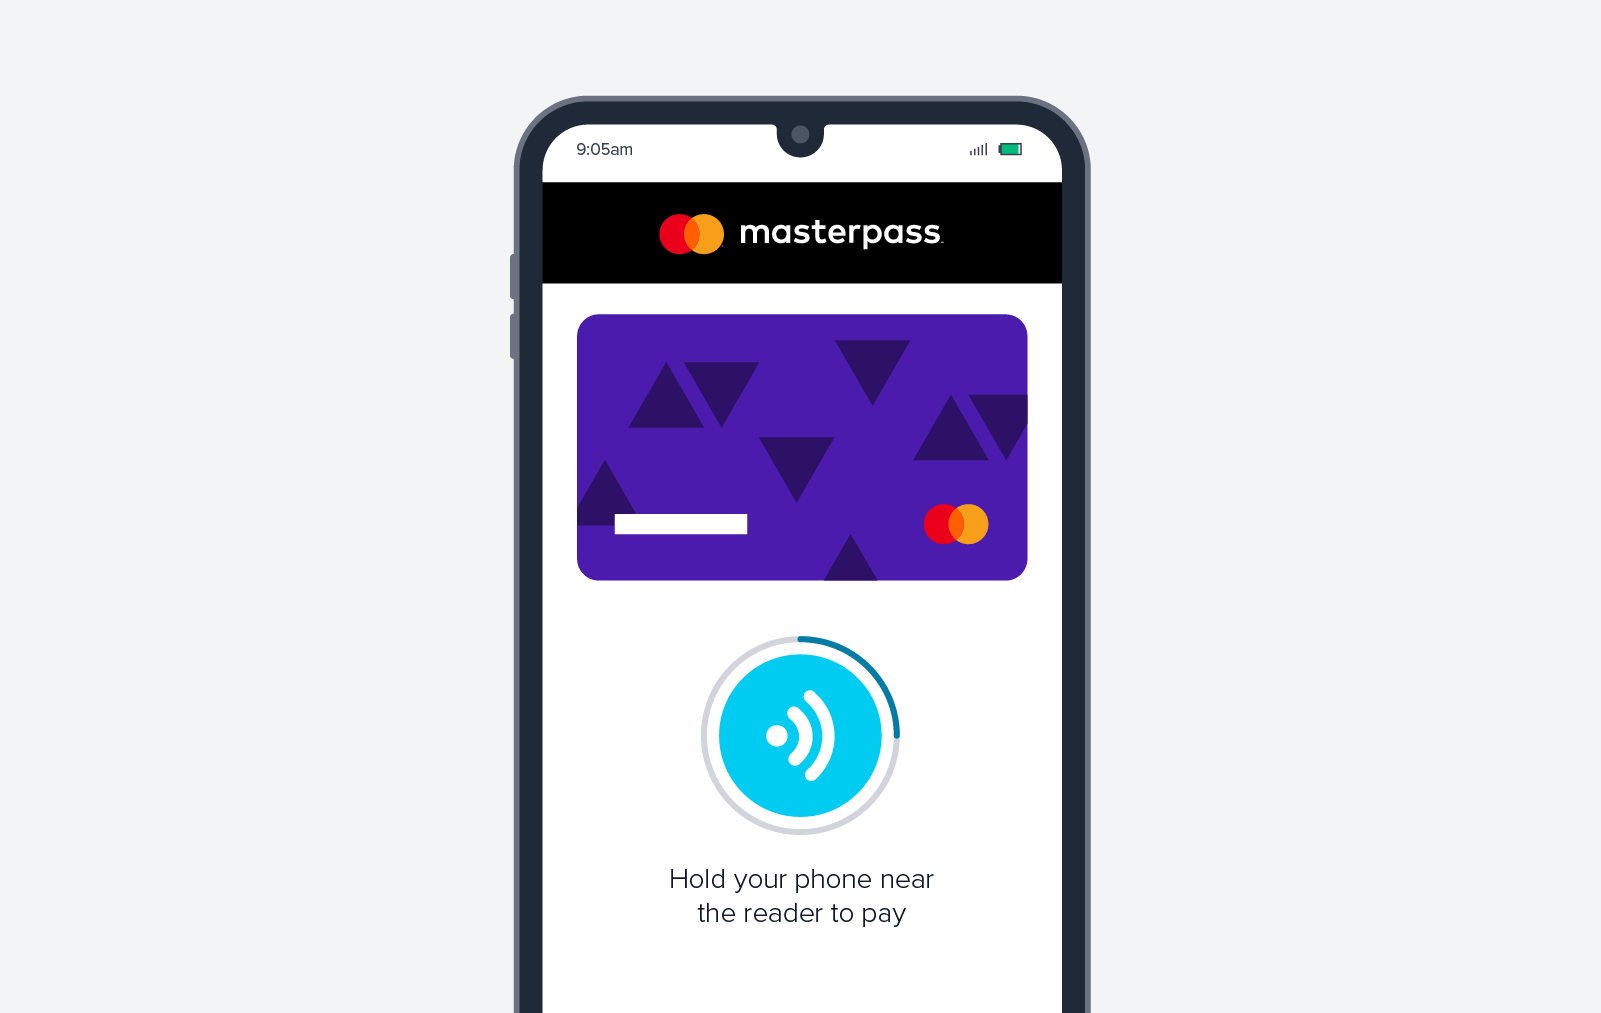 Mastercard helps with customer loyalty by having users sign up for Masterpass